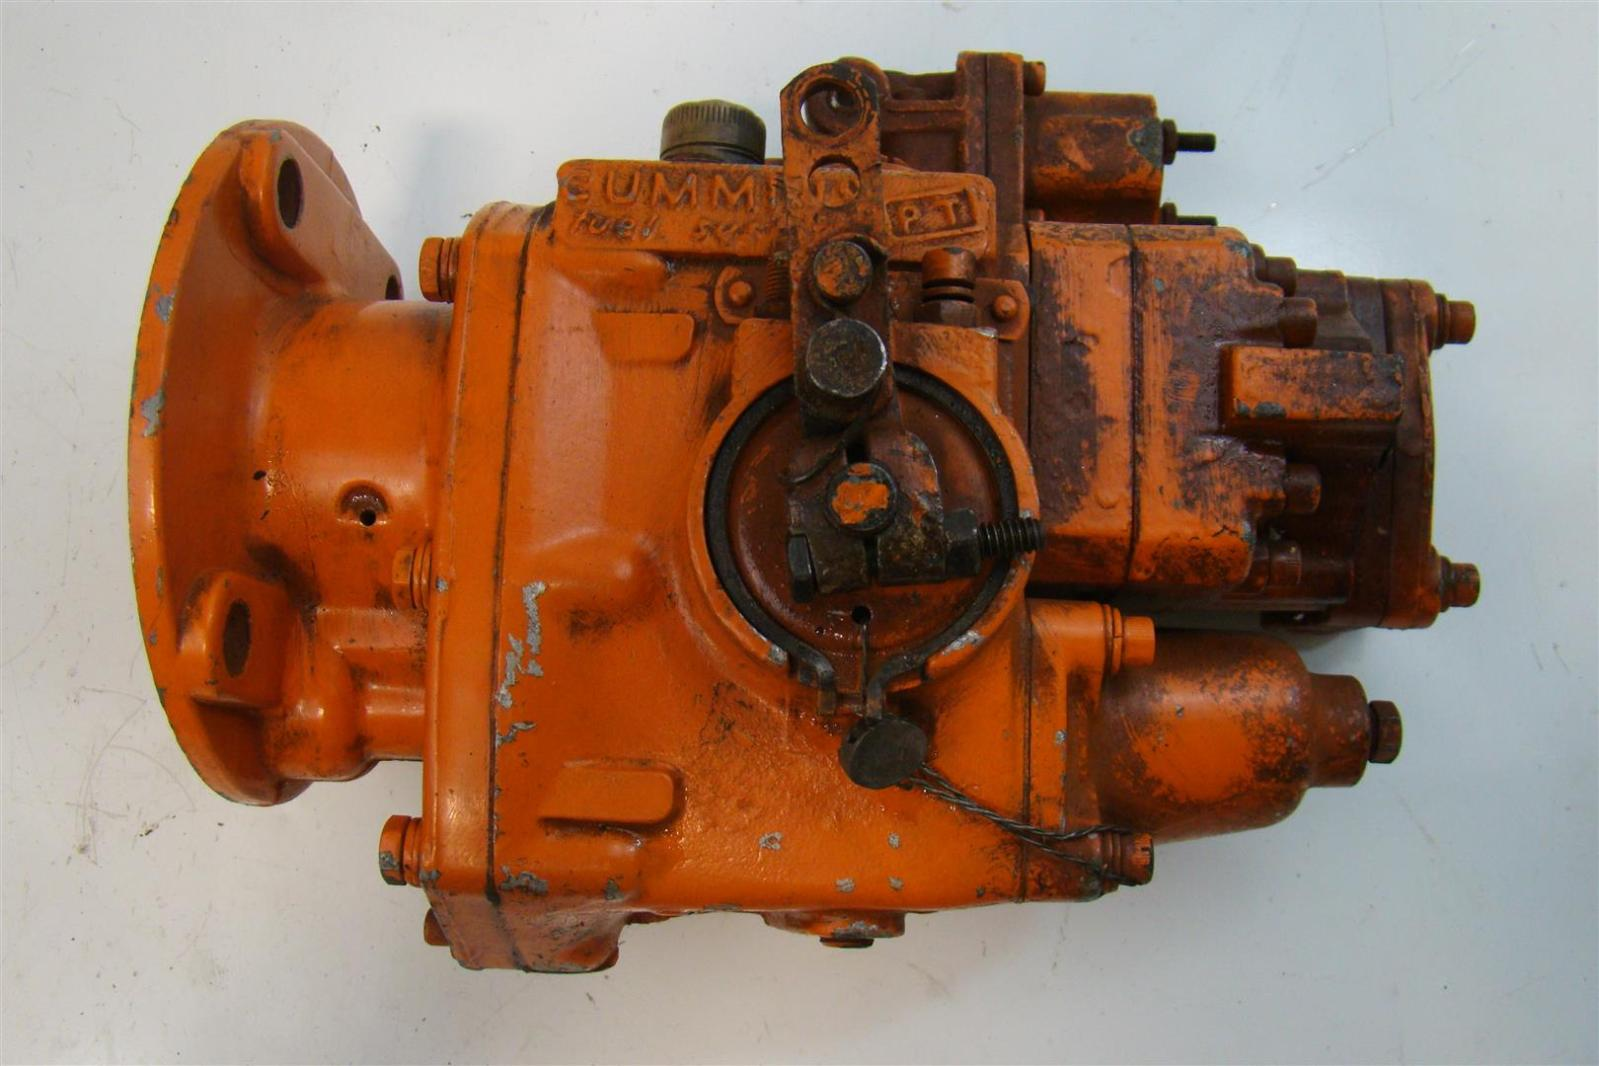 Details about Cummins Fuel Systems Injection Pump 153338